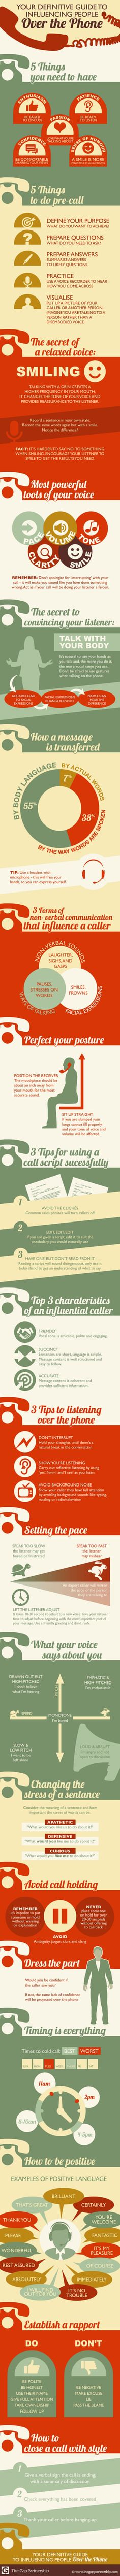 32 best phone sales scripts images on pinterest online business attention millennialss dying art of phone conversations the definitive guide to influencing people over the phone infographic fandeluxe Choice Image